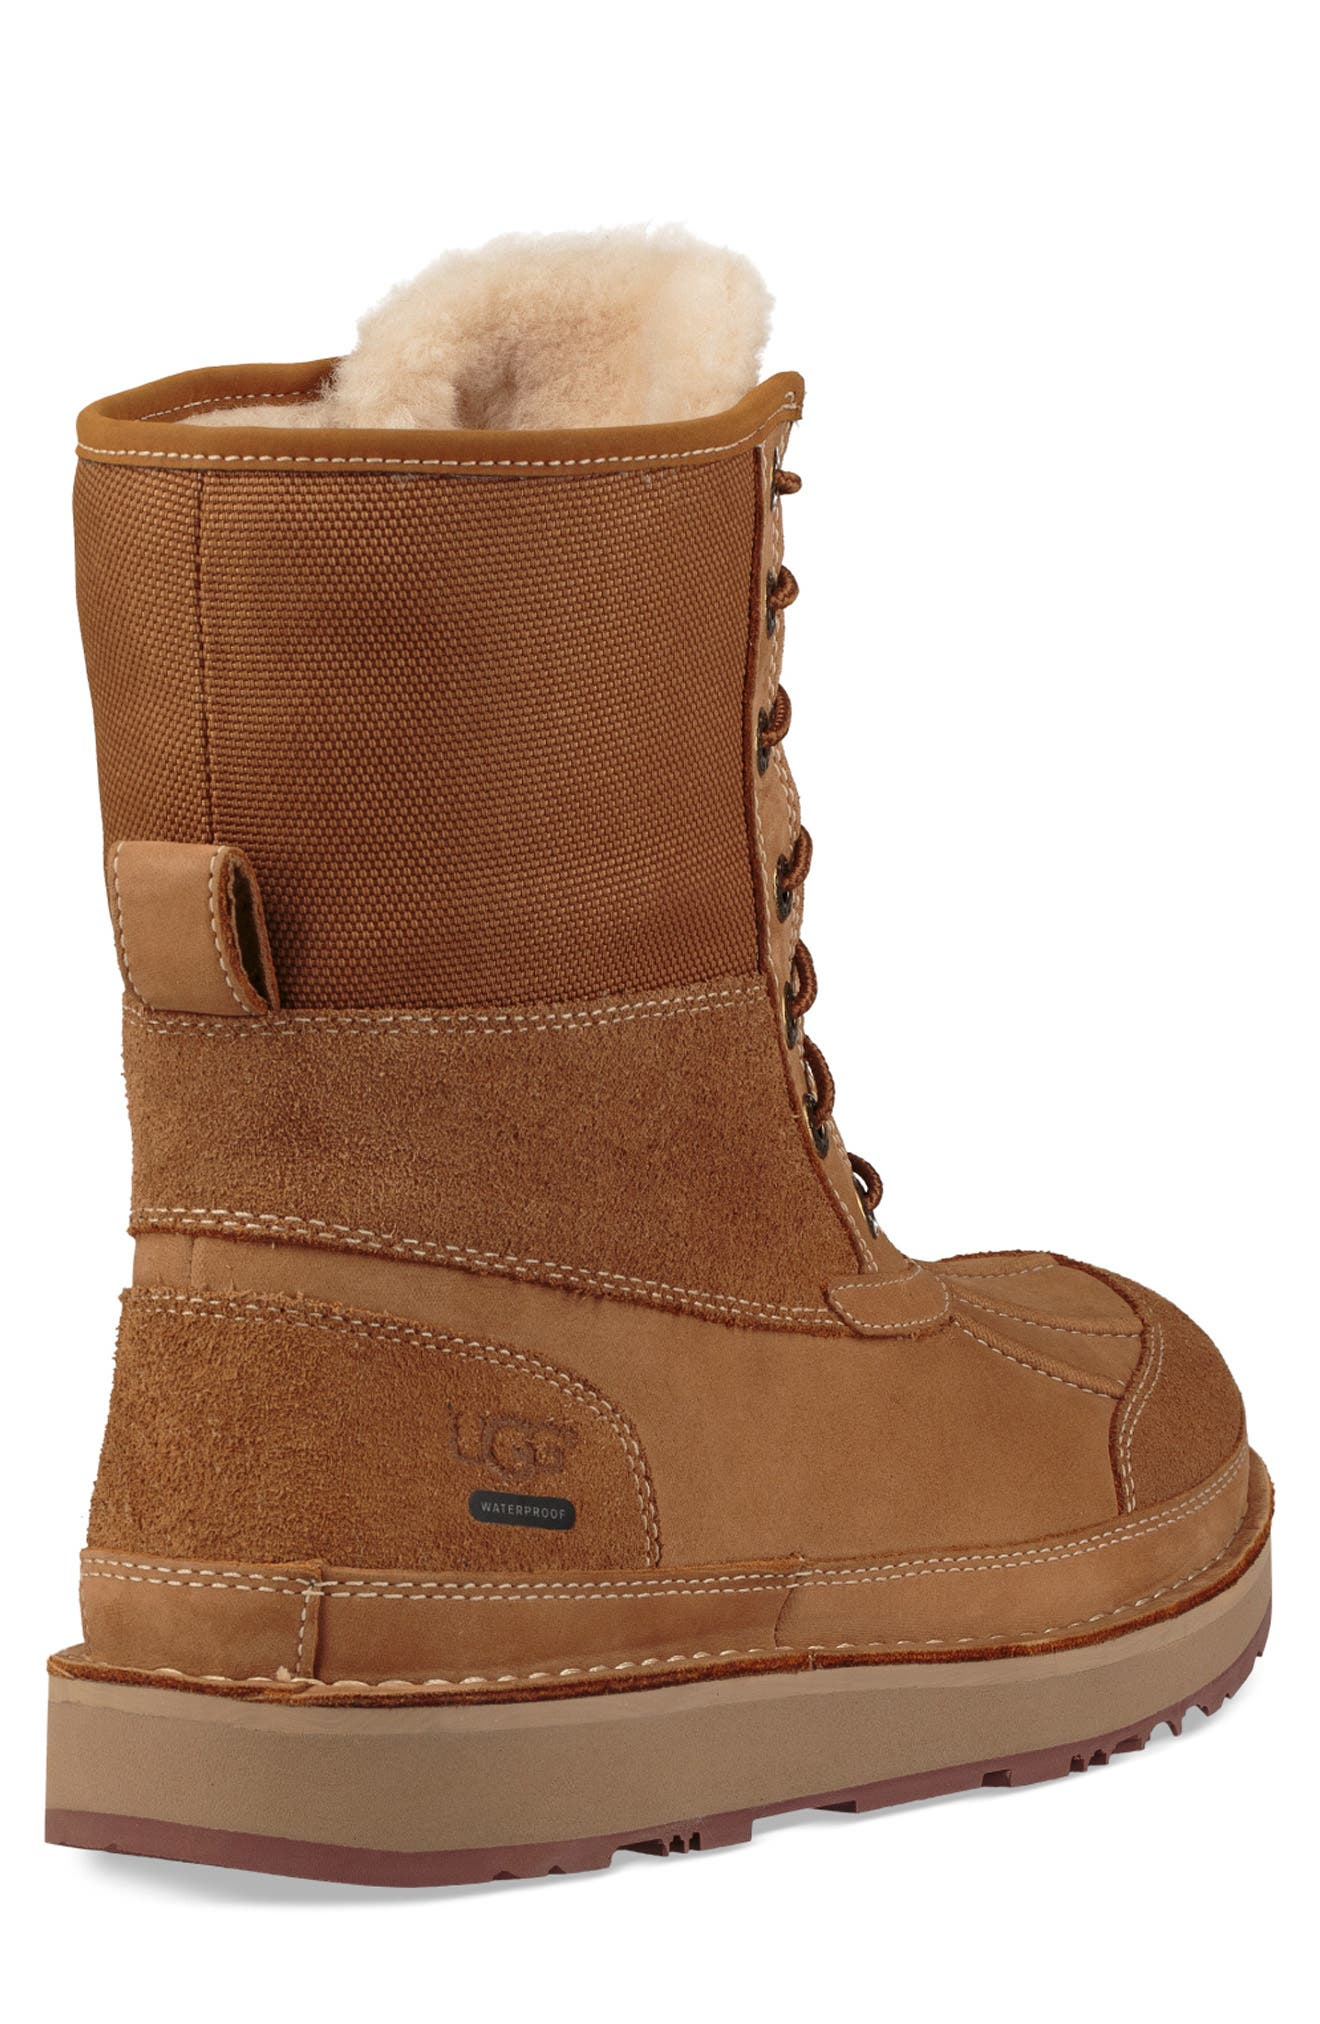 Avalanche Butte Waterproof Boot,                             Alternate thumbnail 3, color,                             CHESTNUT